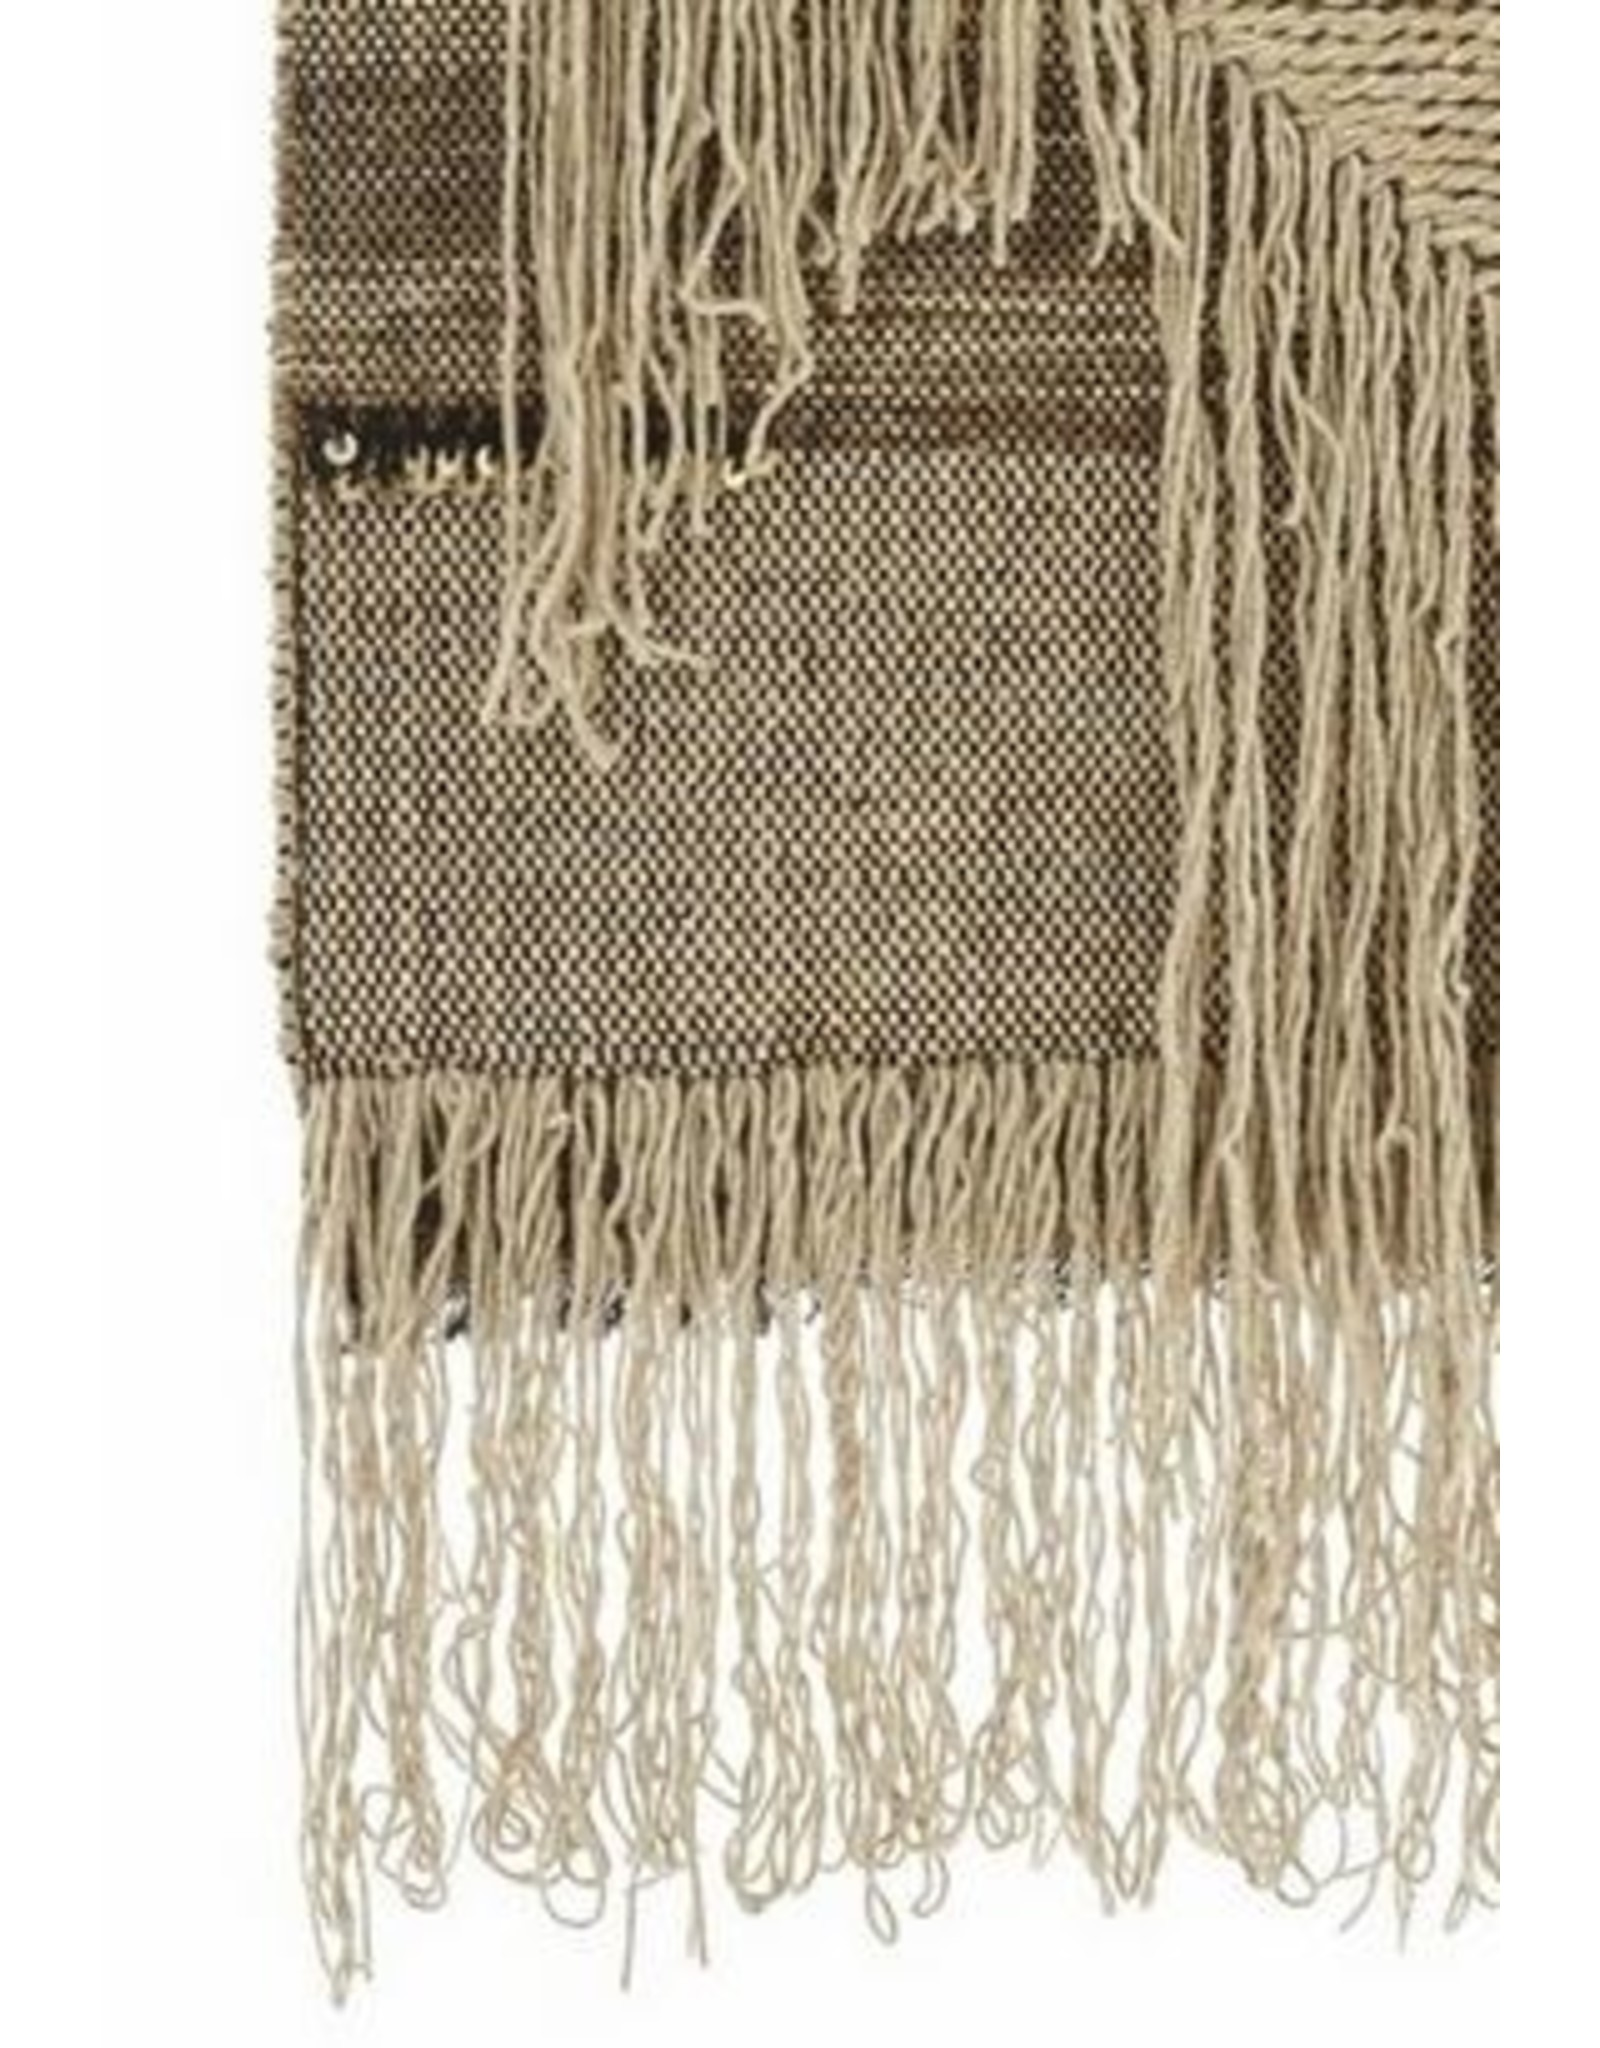 Forde Wall Hanging 80x130cm